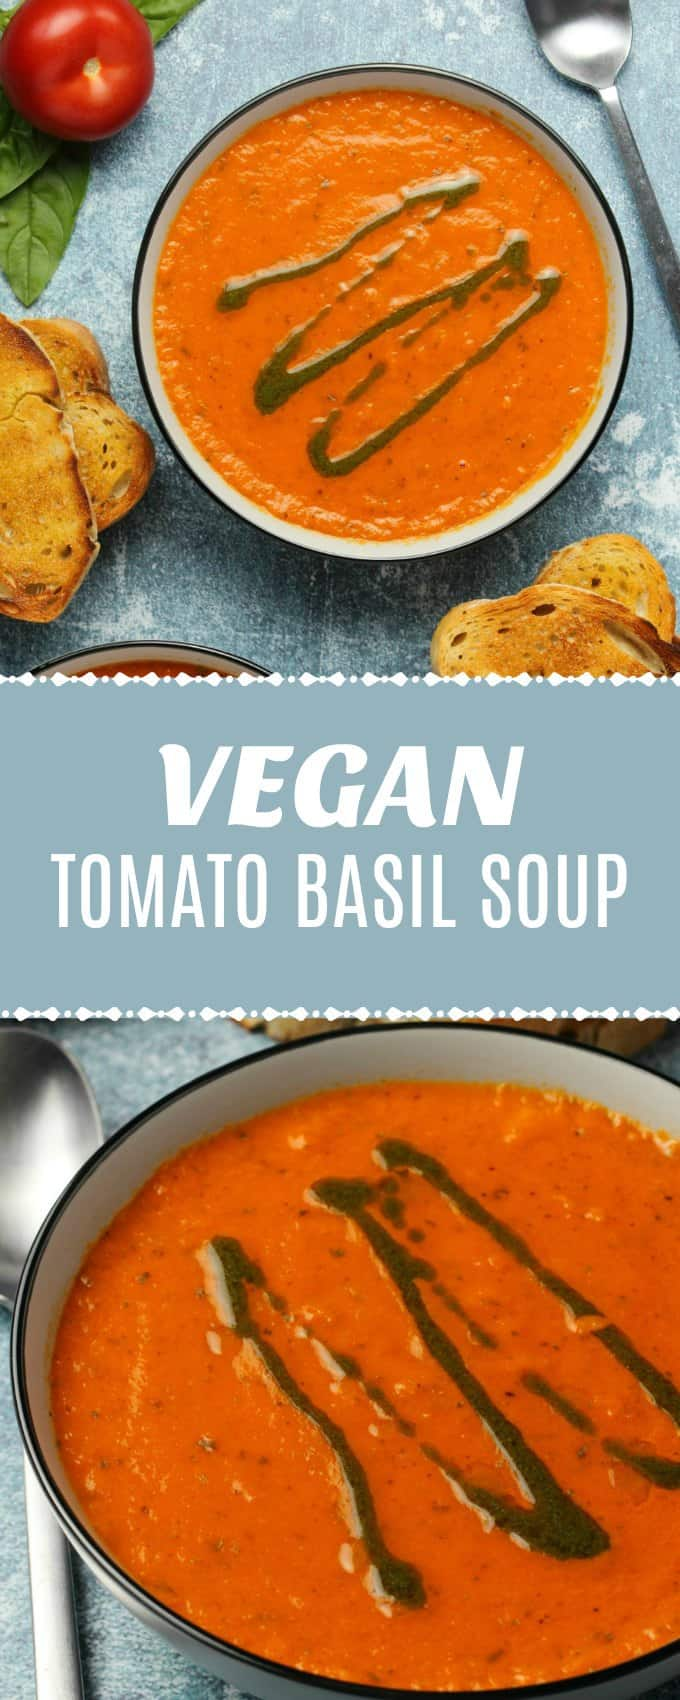 Deliciously creamy vegan tomato basil soup served with a drizzle of homemade basil oil. Super easy, restaurant-worthy appetizer, packed with flavor! | lovingitvegan.com